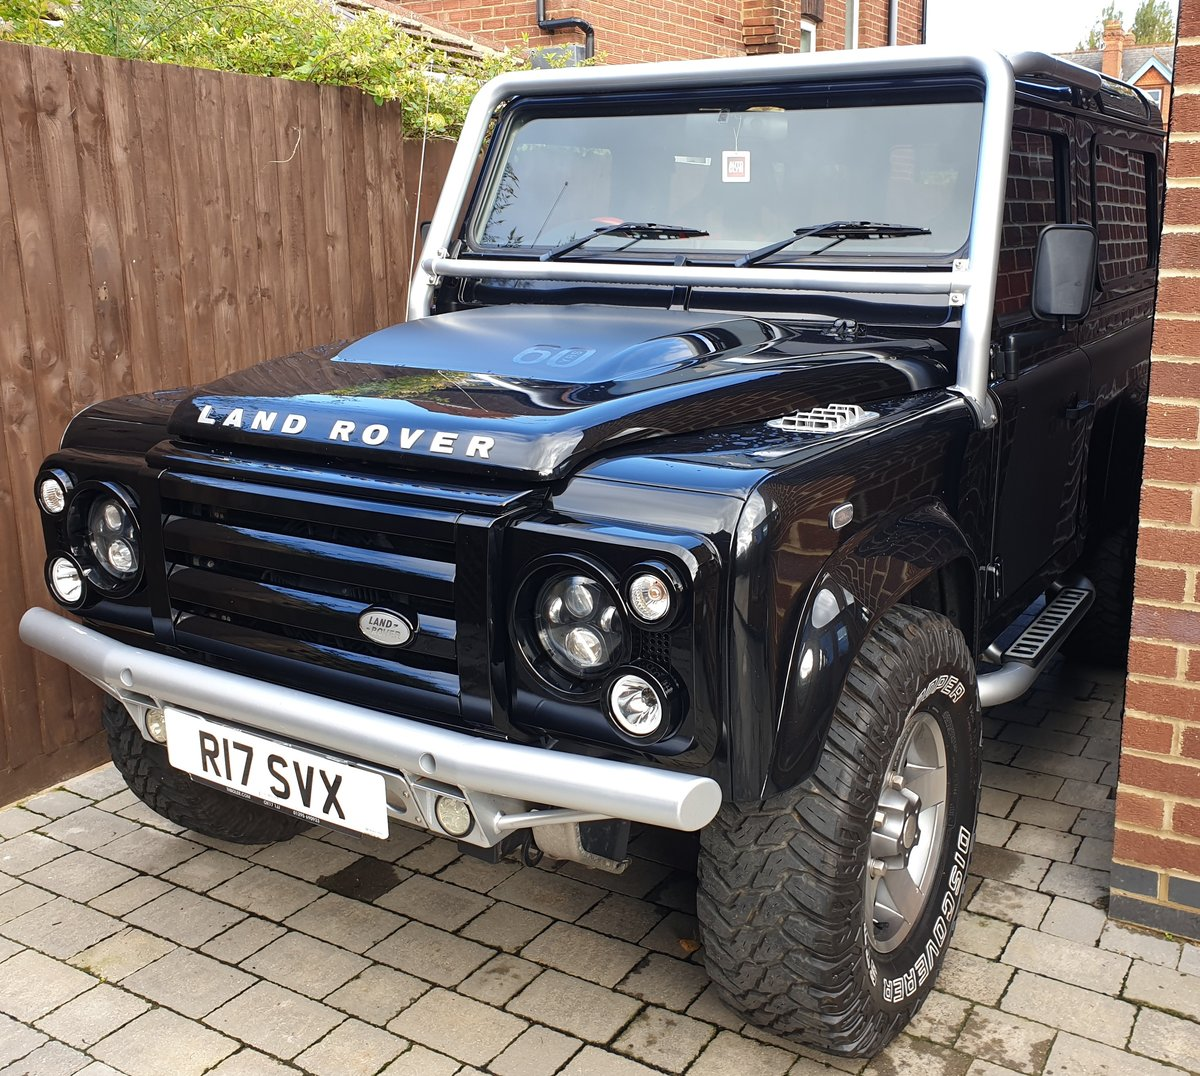 2008 Land Rover Defender SVX 60th Anniversary Model For Sale (picture 1 of 6)